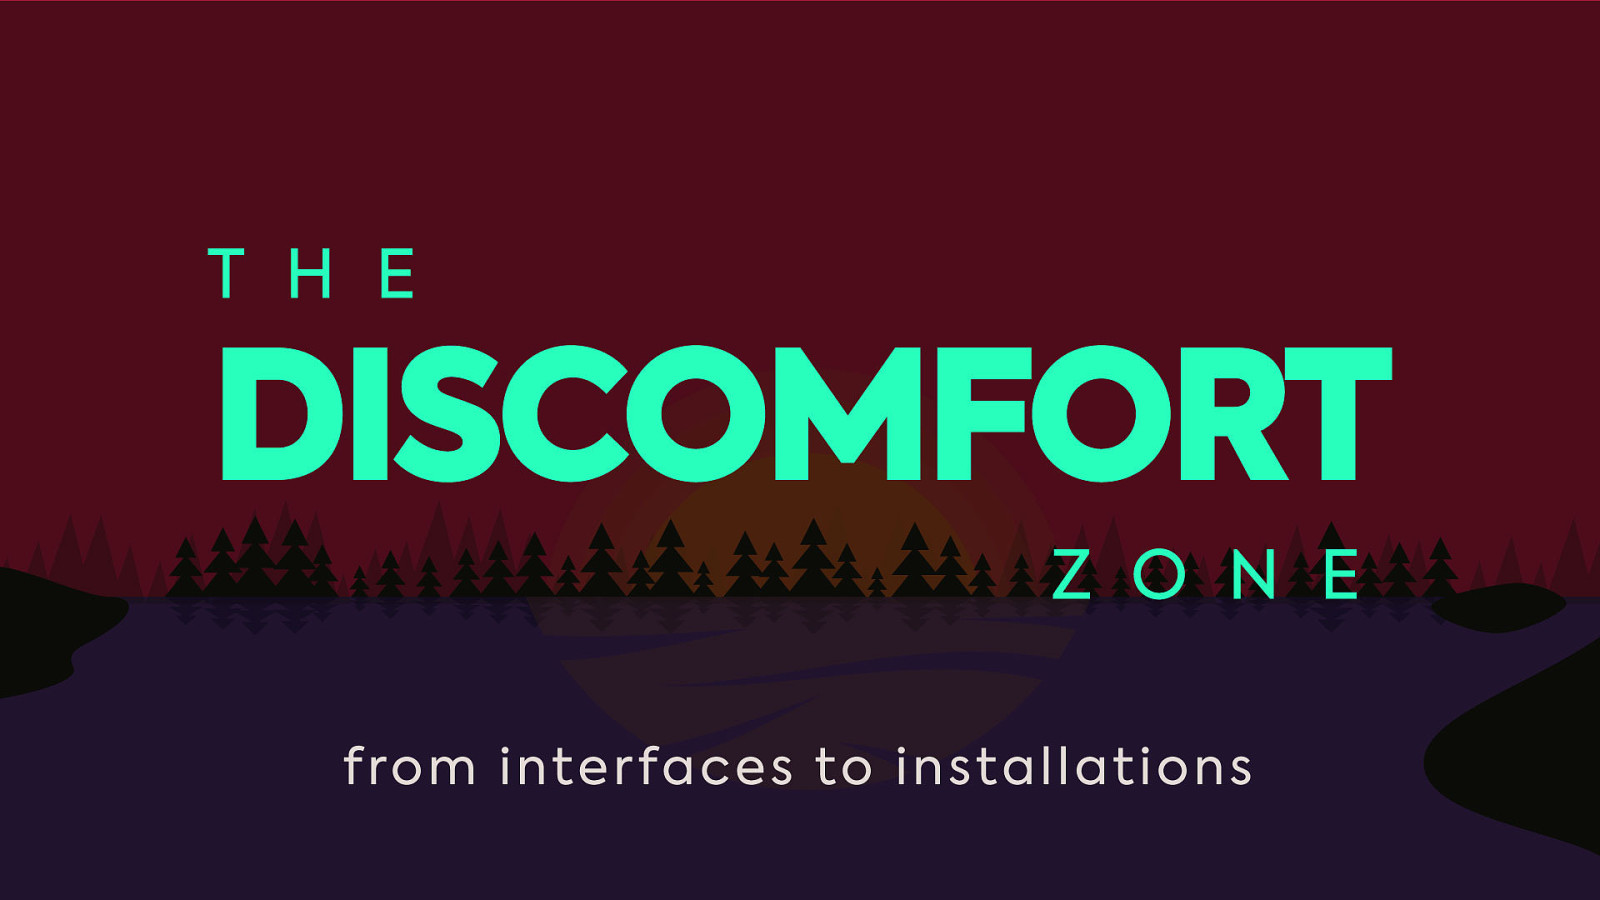 The Discomfort Zone: From Interfaces to Installations